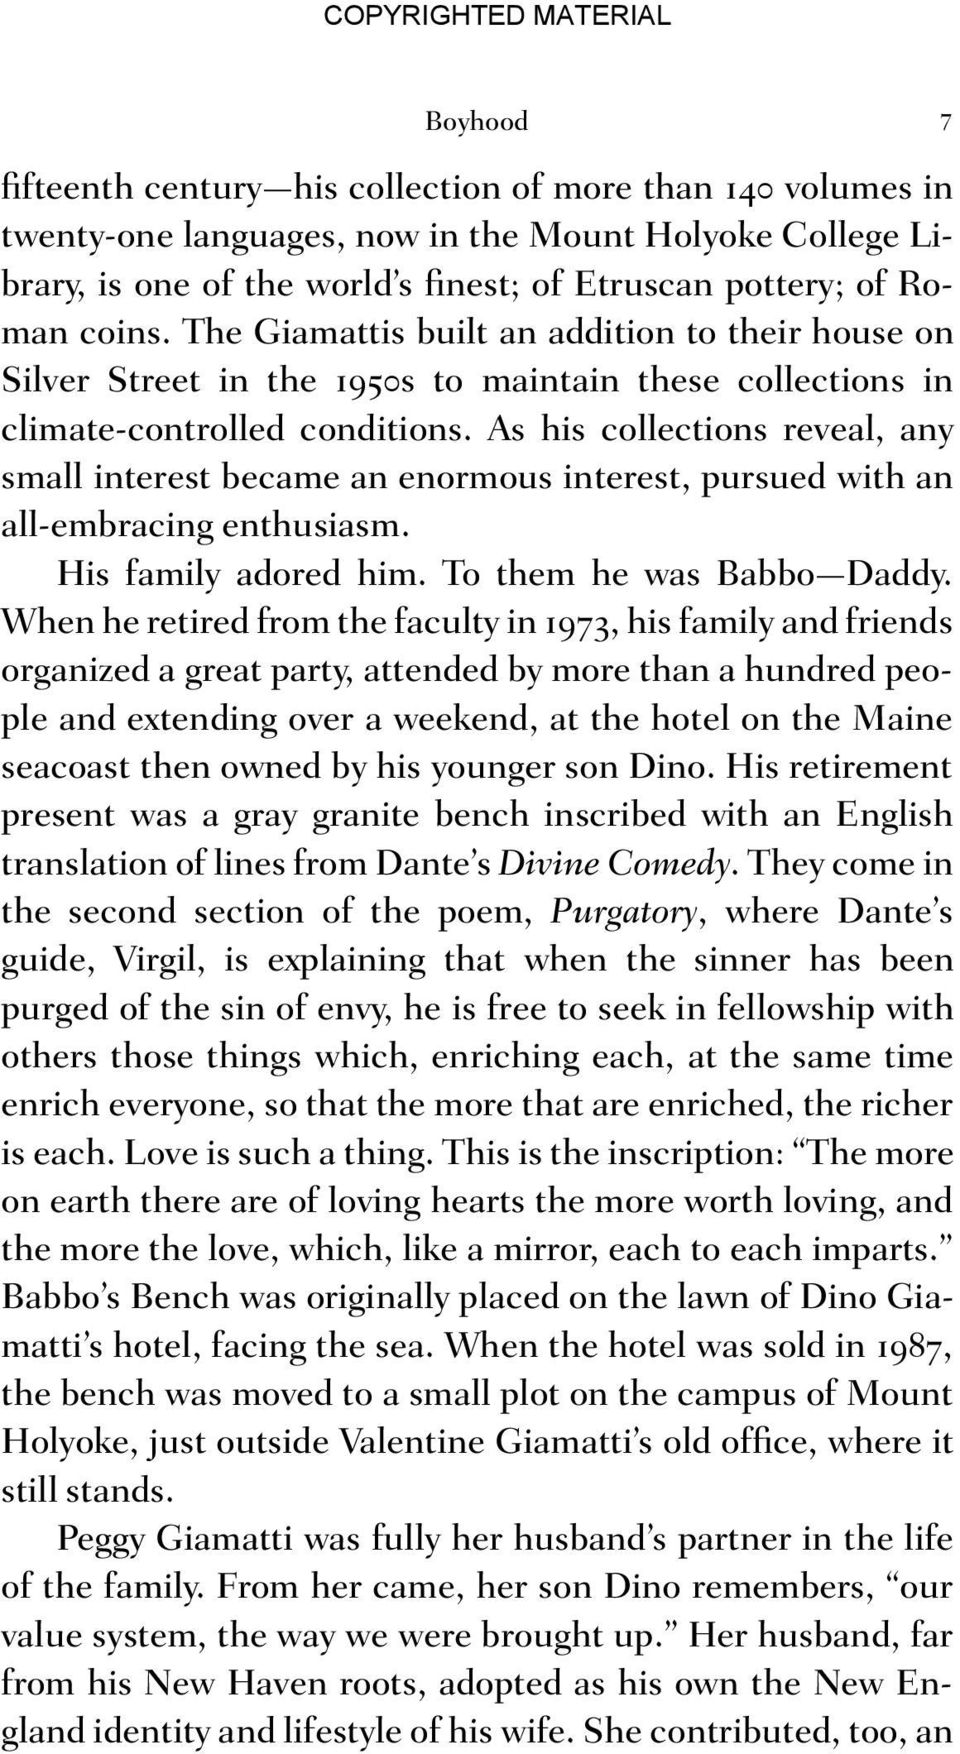 As his collections reveal, any small interest became an enormous interest, pursued with an all-embracing enthusiasm. His family adored him. To them he was Babbo Daddy.